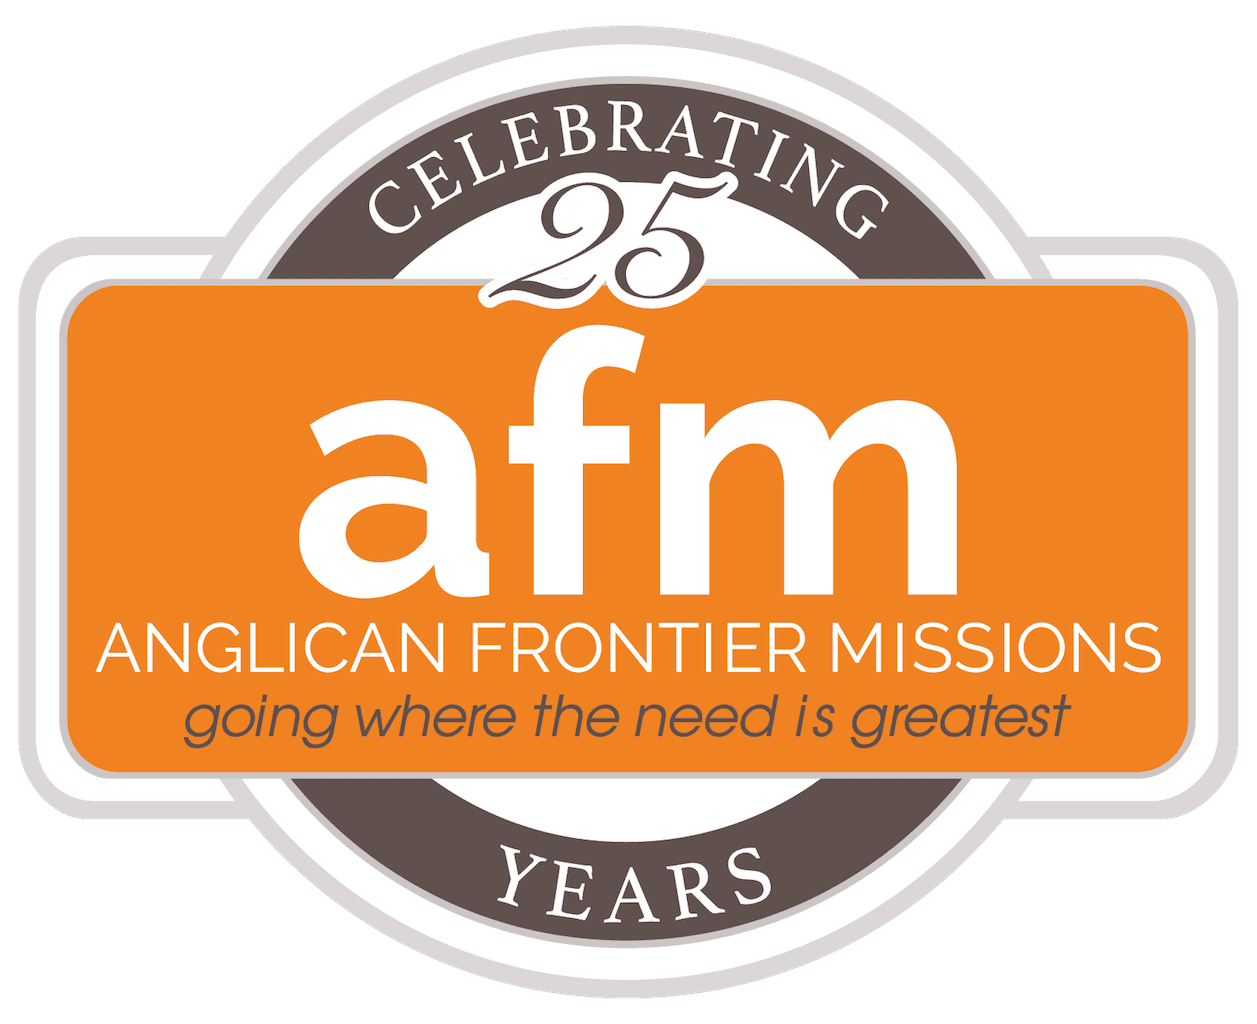 Shadows from Light Unapproachable: Anglican Frontier Missions Celebrates 25 Years